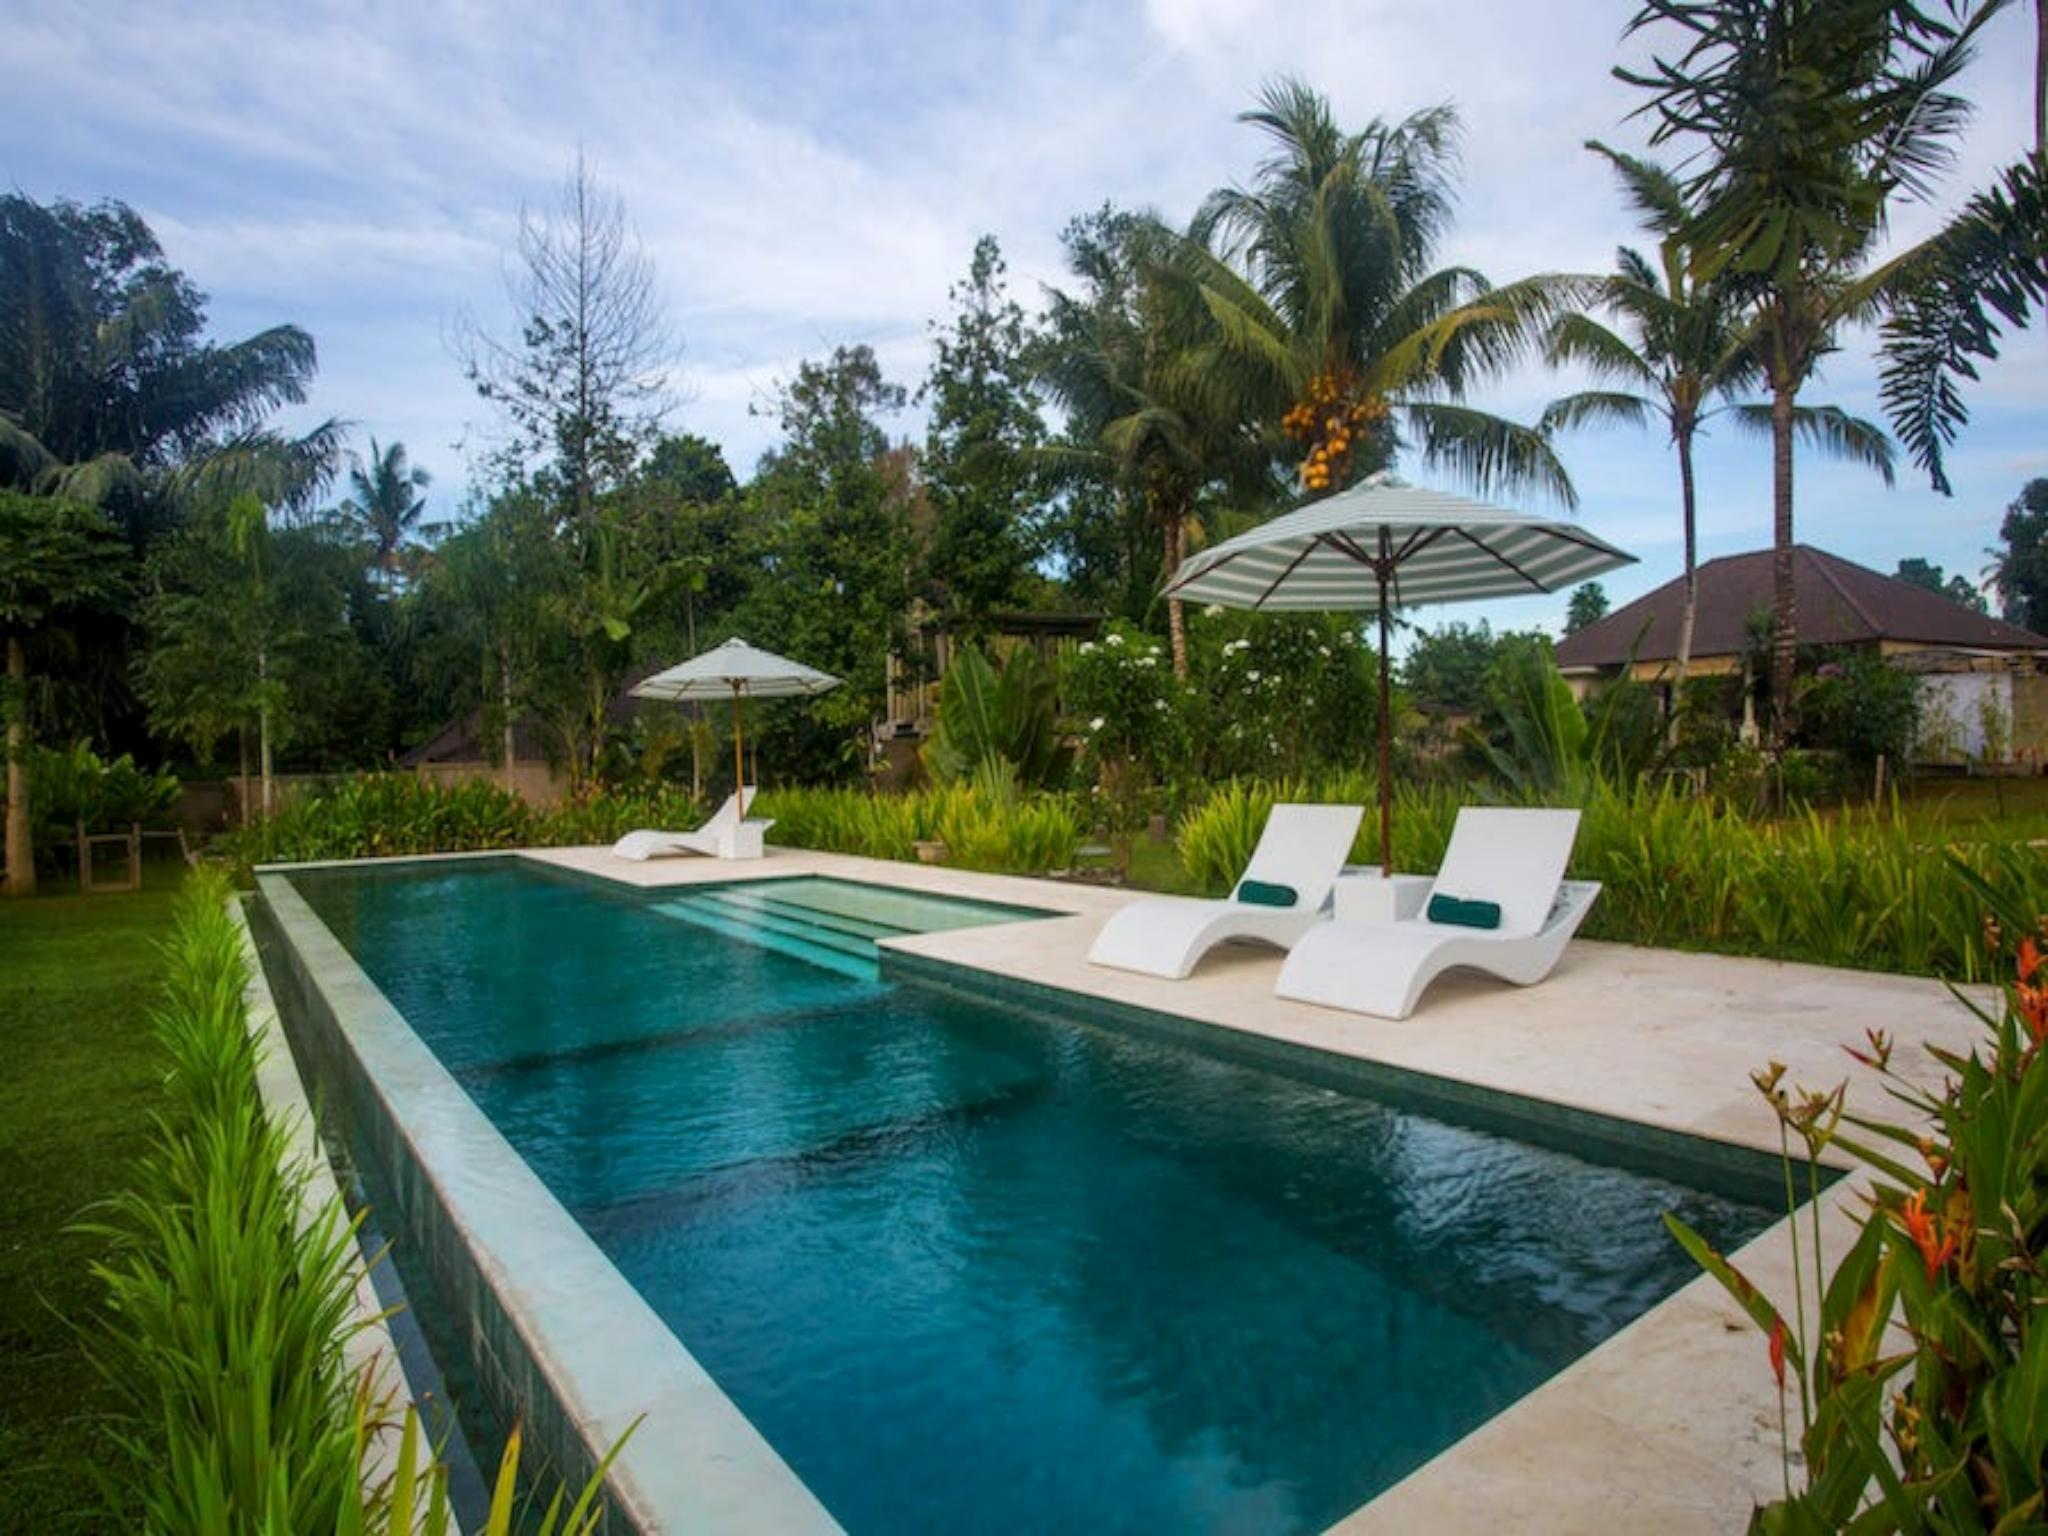 Vista garden villa 1 bed large pool central Ubud ホテル詳細